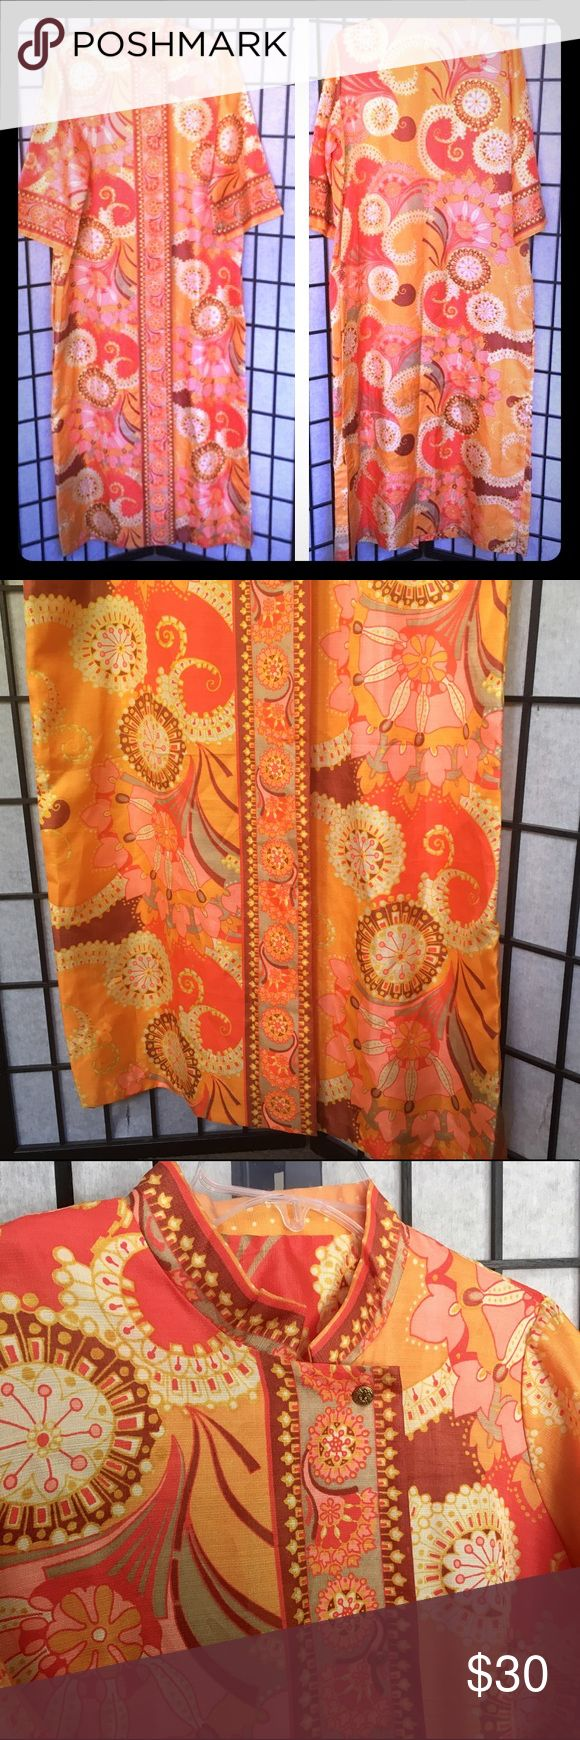 """Vintage 1960's Duster long cover up dress Multi Colored 1960's Vintage Button up Long Dress with 3/4 sleeves very light weight and great for traveling.  Size 18  In excellent condition :FB  Approx. Laying flat: Sleeve length: 17""""                             Armpit to Armpit: 23.5"""" Shoulder to Bottom Hem: 57.5""""  Feel free to ask any questions. Sorry No trades, no modeling. Check out the other items in my closet. Bundles are 20% off 3 + items.  I consider all offers!   Happy POSHING!! no brand…"""